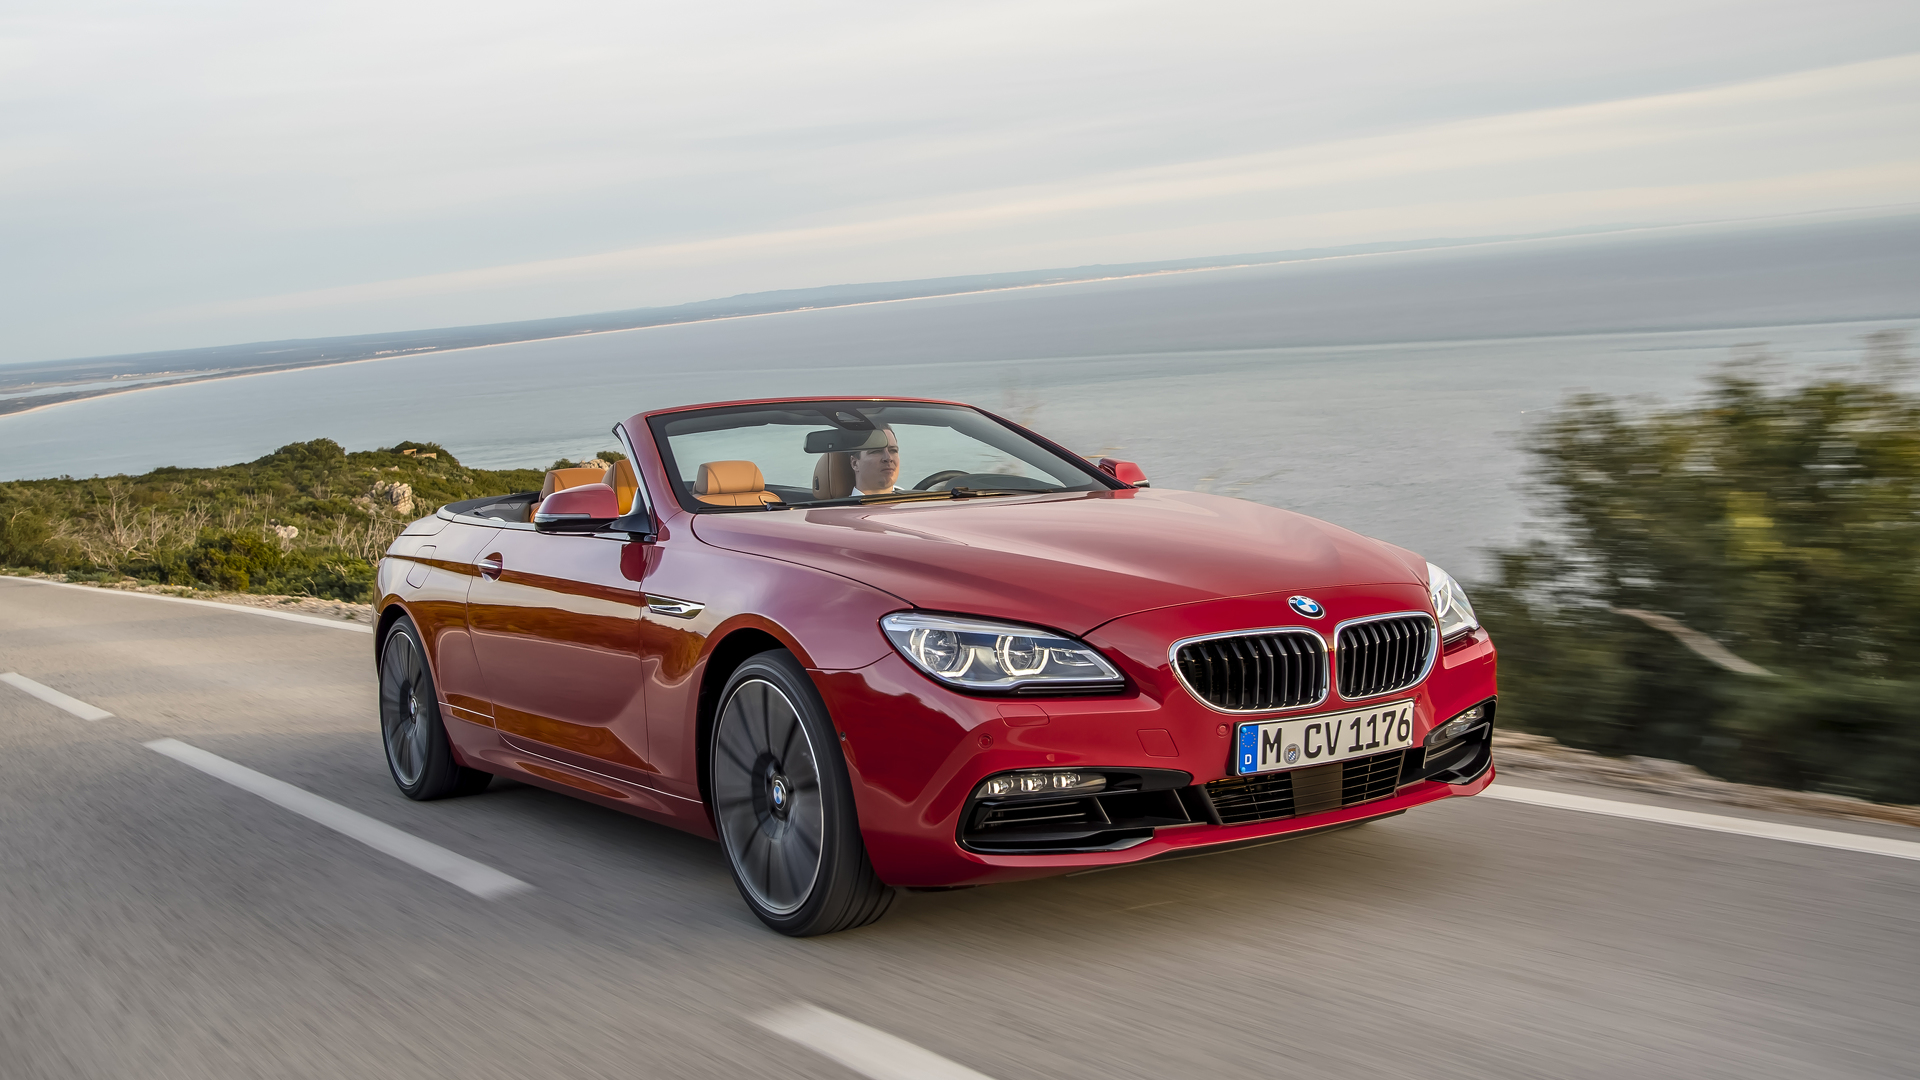 Bmw 6 Series Convertible News And Reviews Motor1 Com